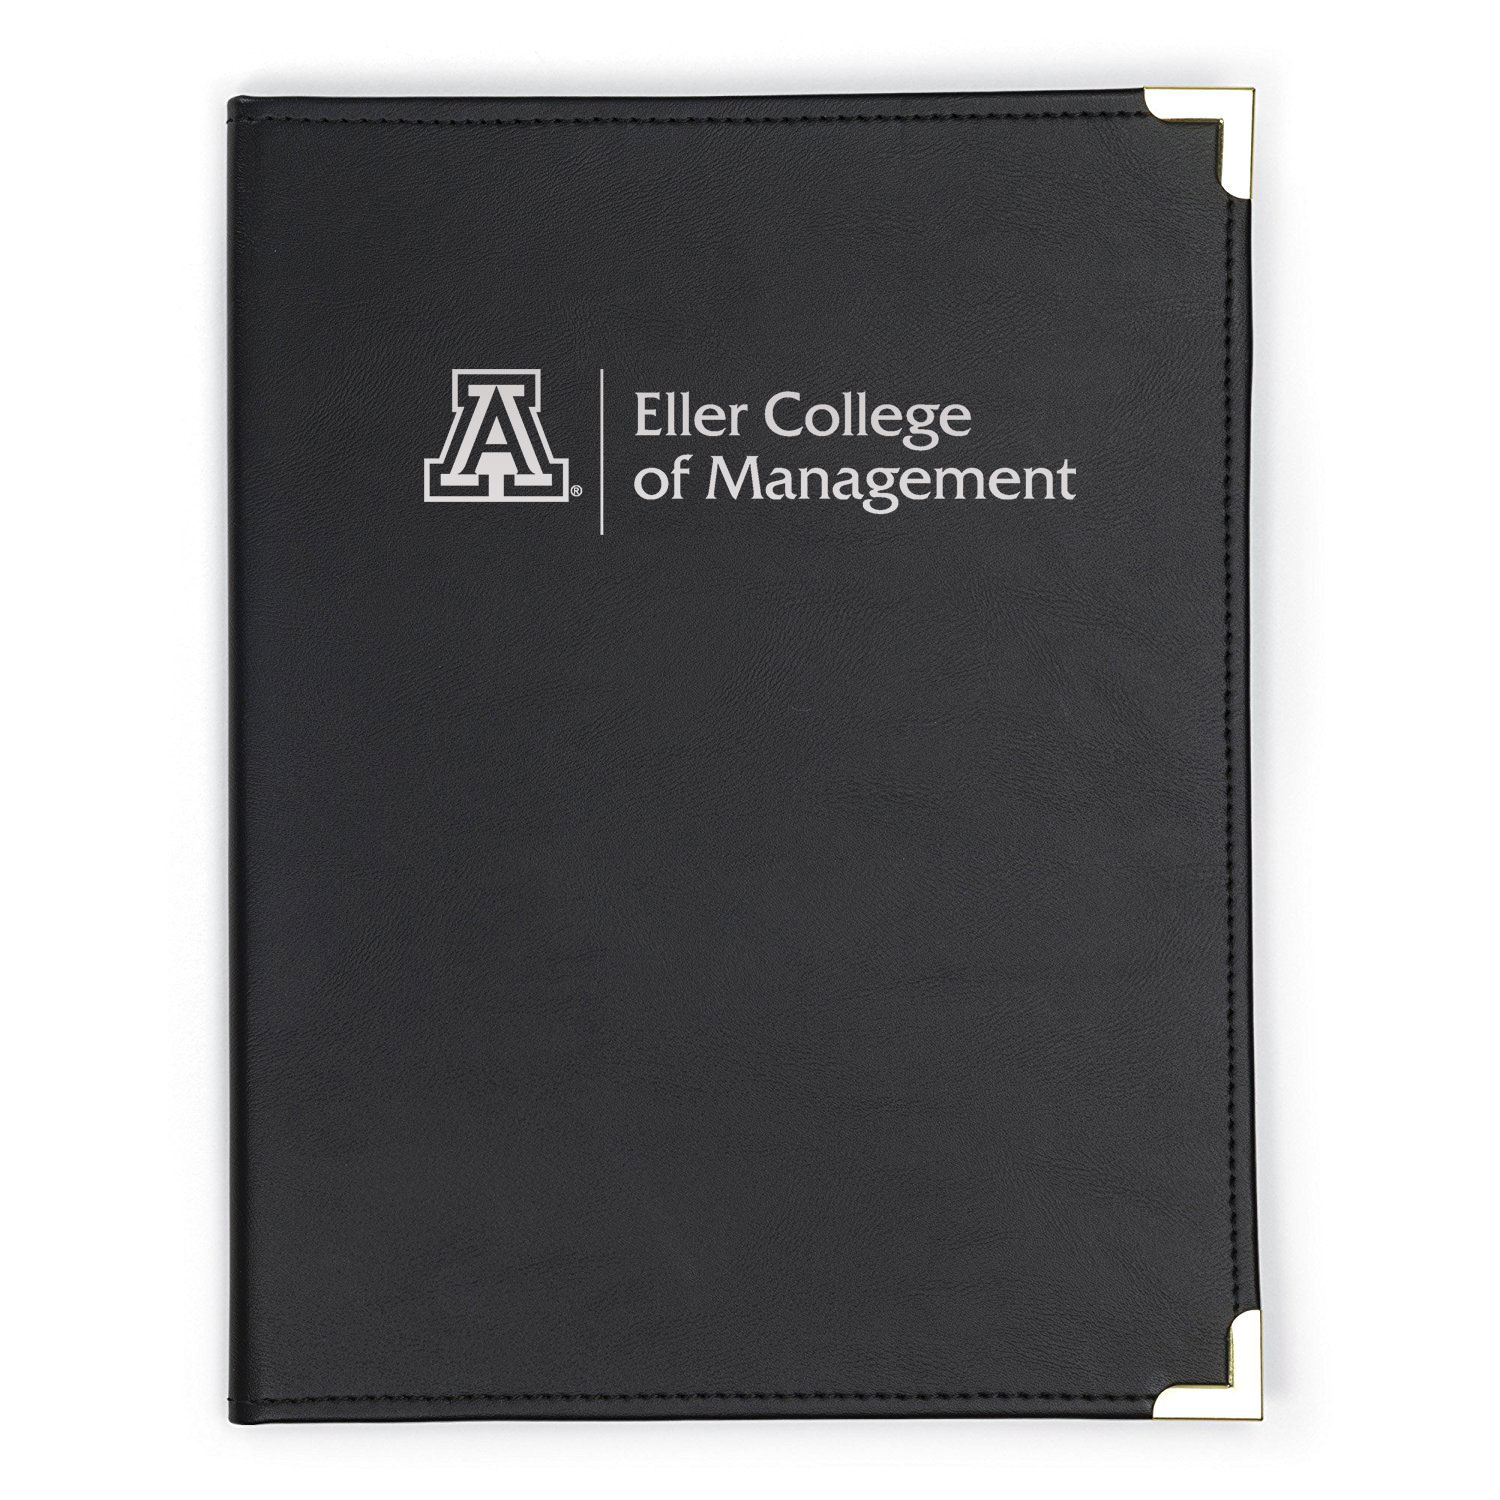 Image For Samsill: Arizona Eller College of Management Padfolio